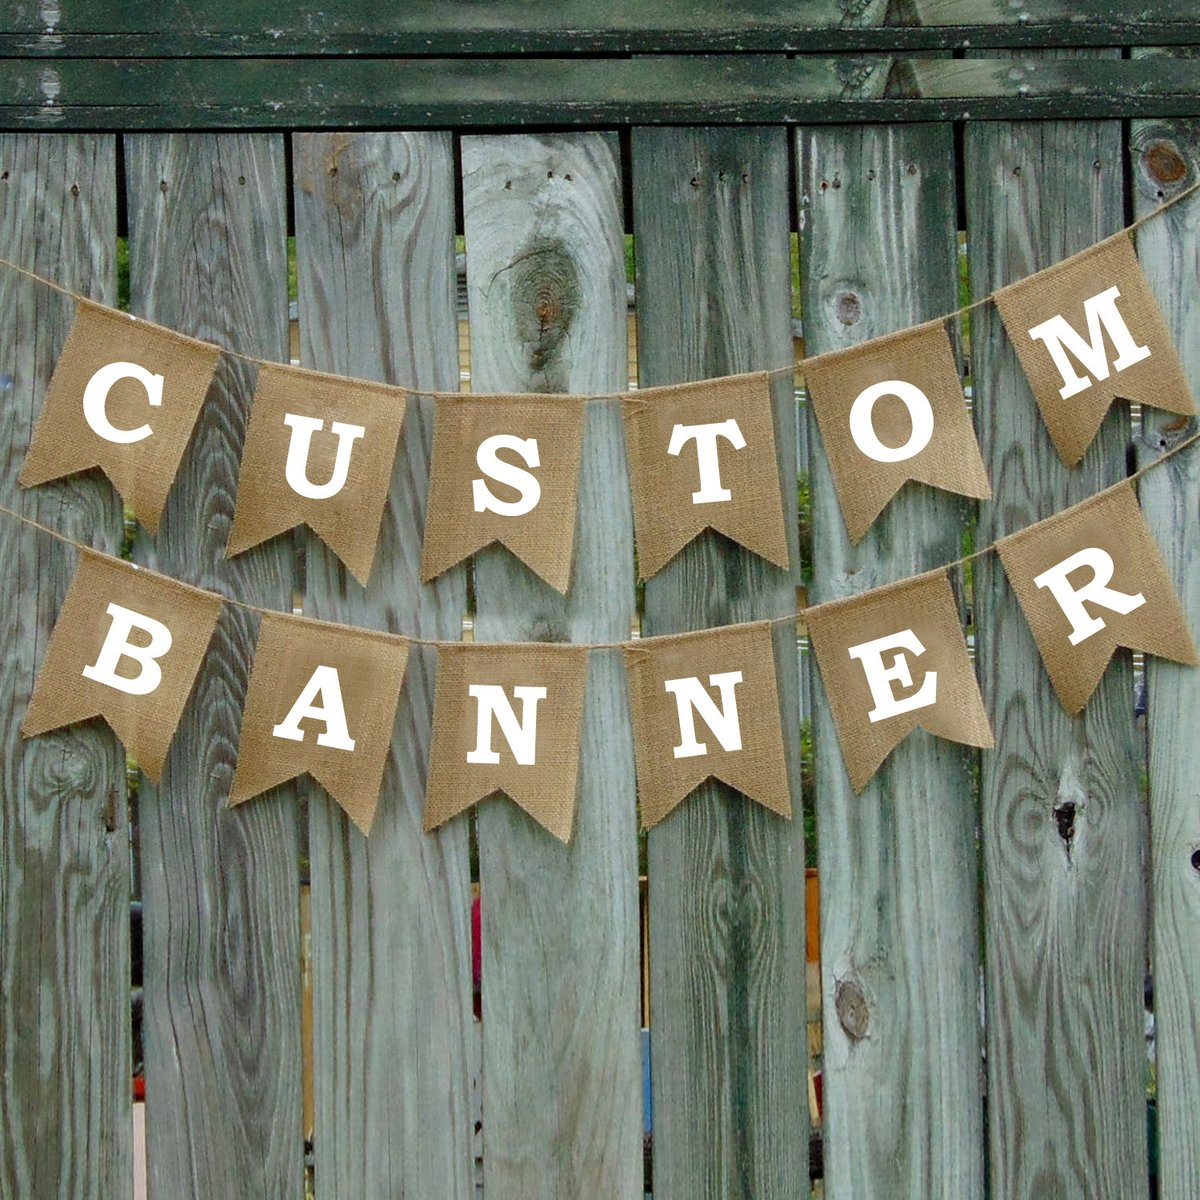 Excited to share the latest addition to my #etsy shop: Custom Burlap banner - Wedding Custom Banner - Personalized Banner - Birthday Burlap Banner - Design your own - Retirement Burlap Banner  #white #clear #personalizedbanner #burlappartybanner